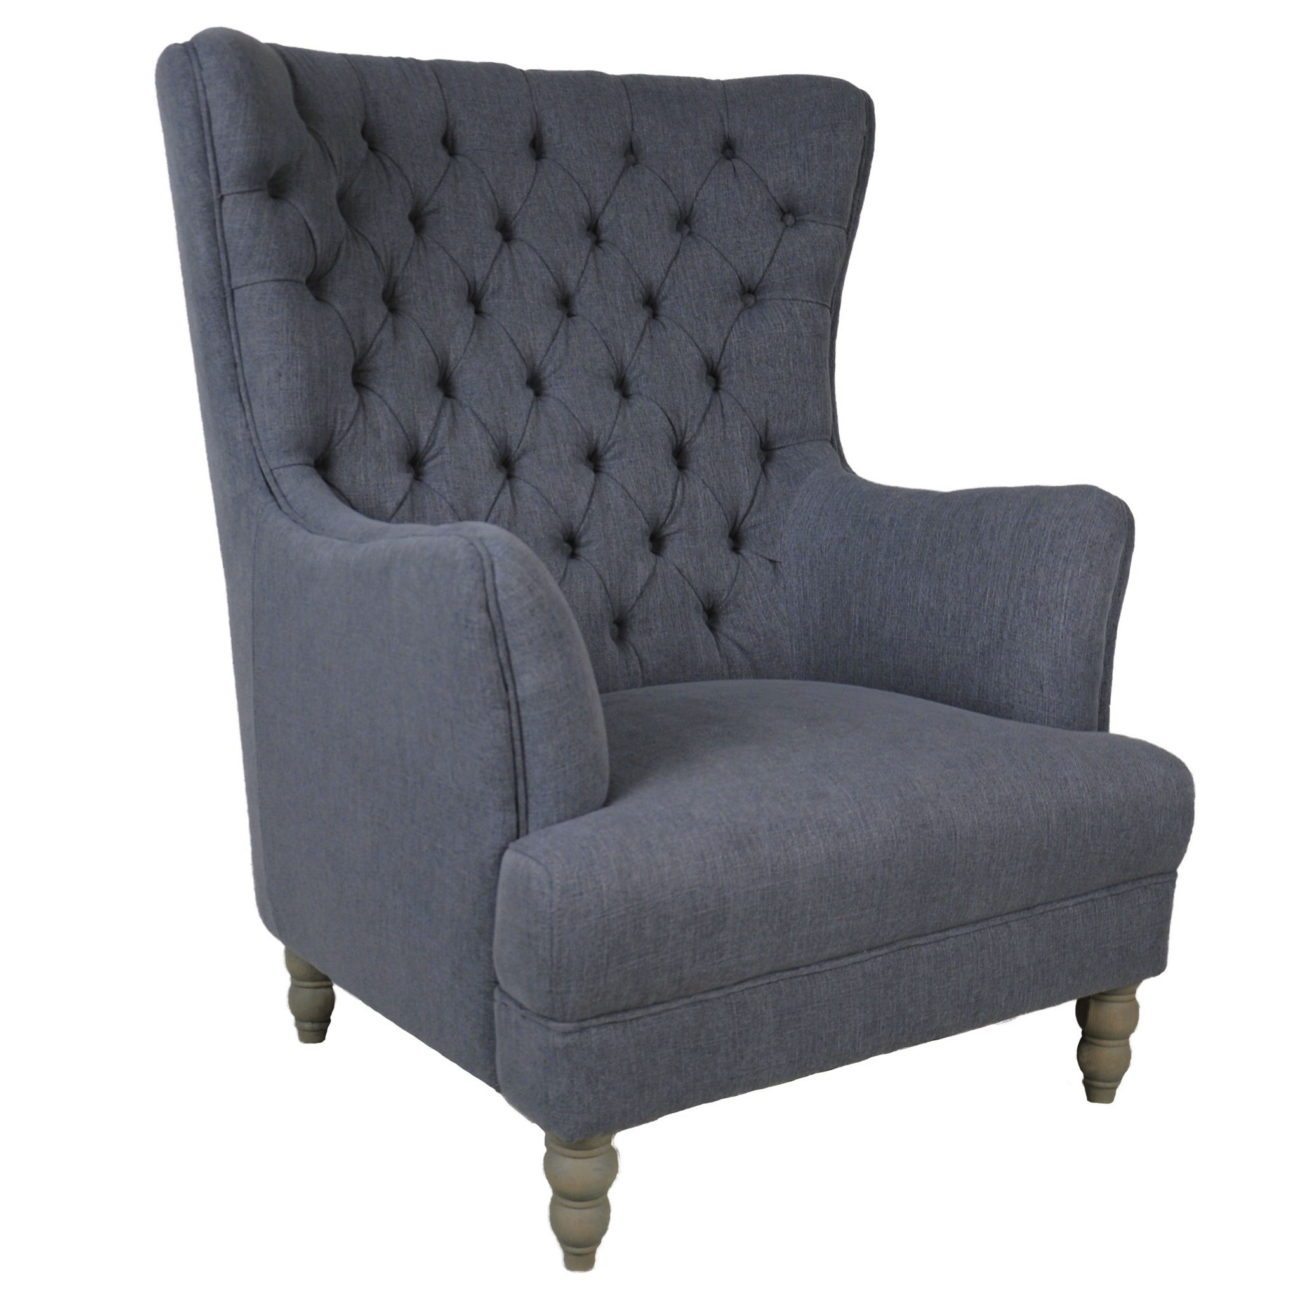 Stockwell Button Tufted Oversized Wing Back Club Chair.